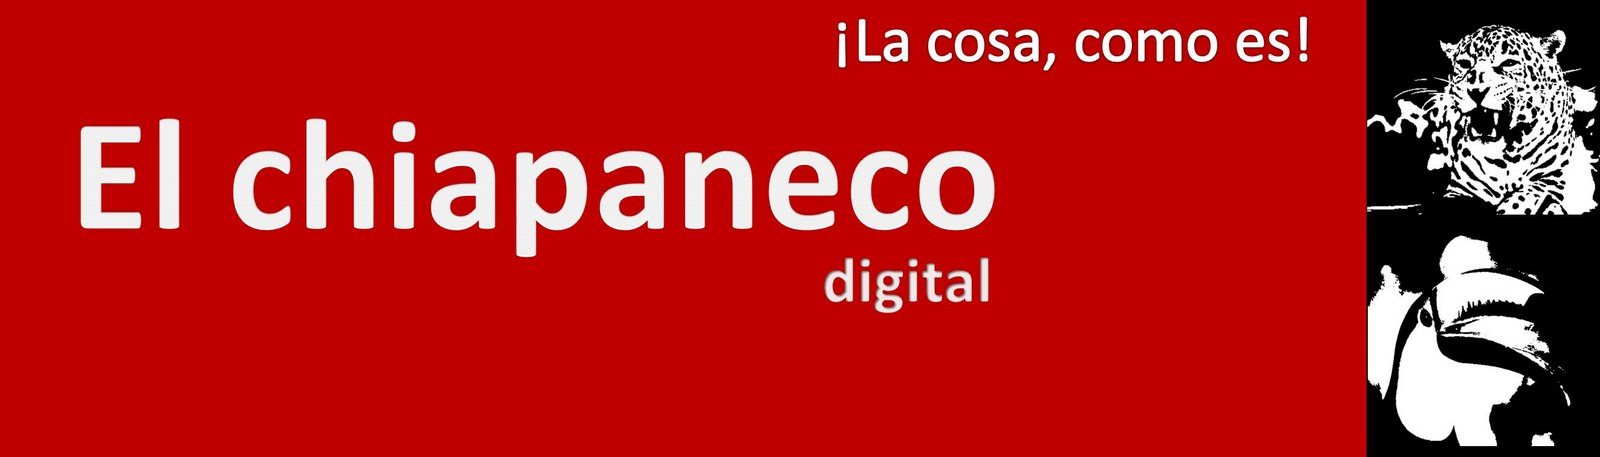 El chiapaneco digital